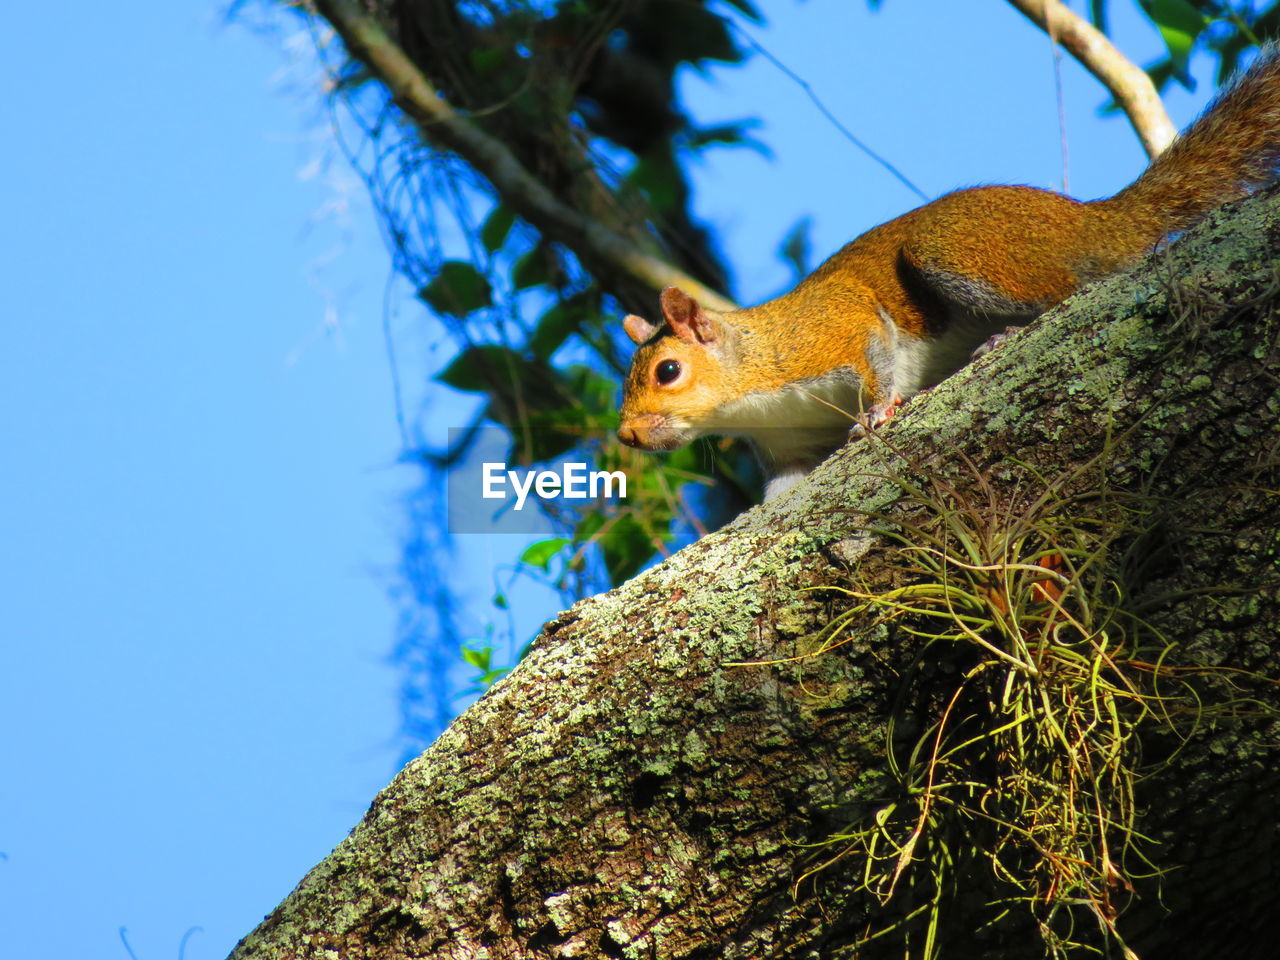 animal themes, animal, animal wildlife, animals in the wild, tree, one animal, vertebrate, plant, nature, branch, no people, low angle view, squirrel, rodent, day, sky, outdoors, tree trunk, blue, focus on foreground